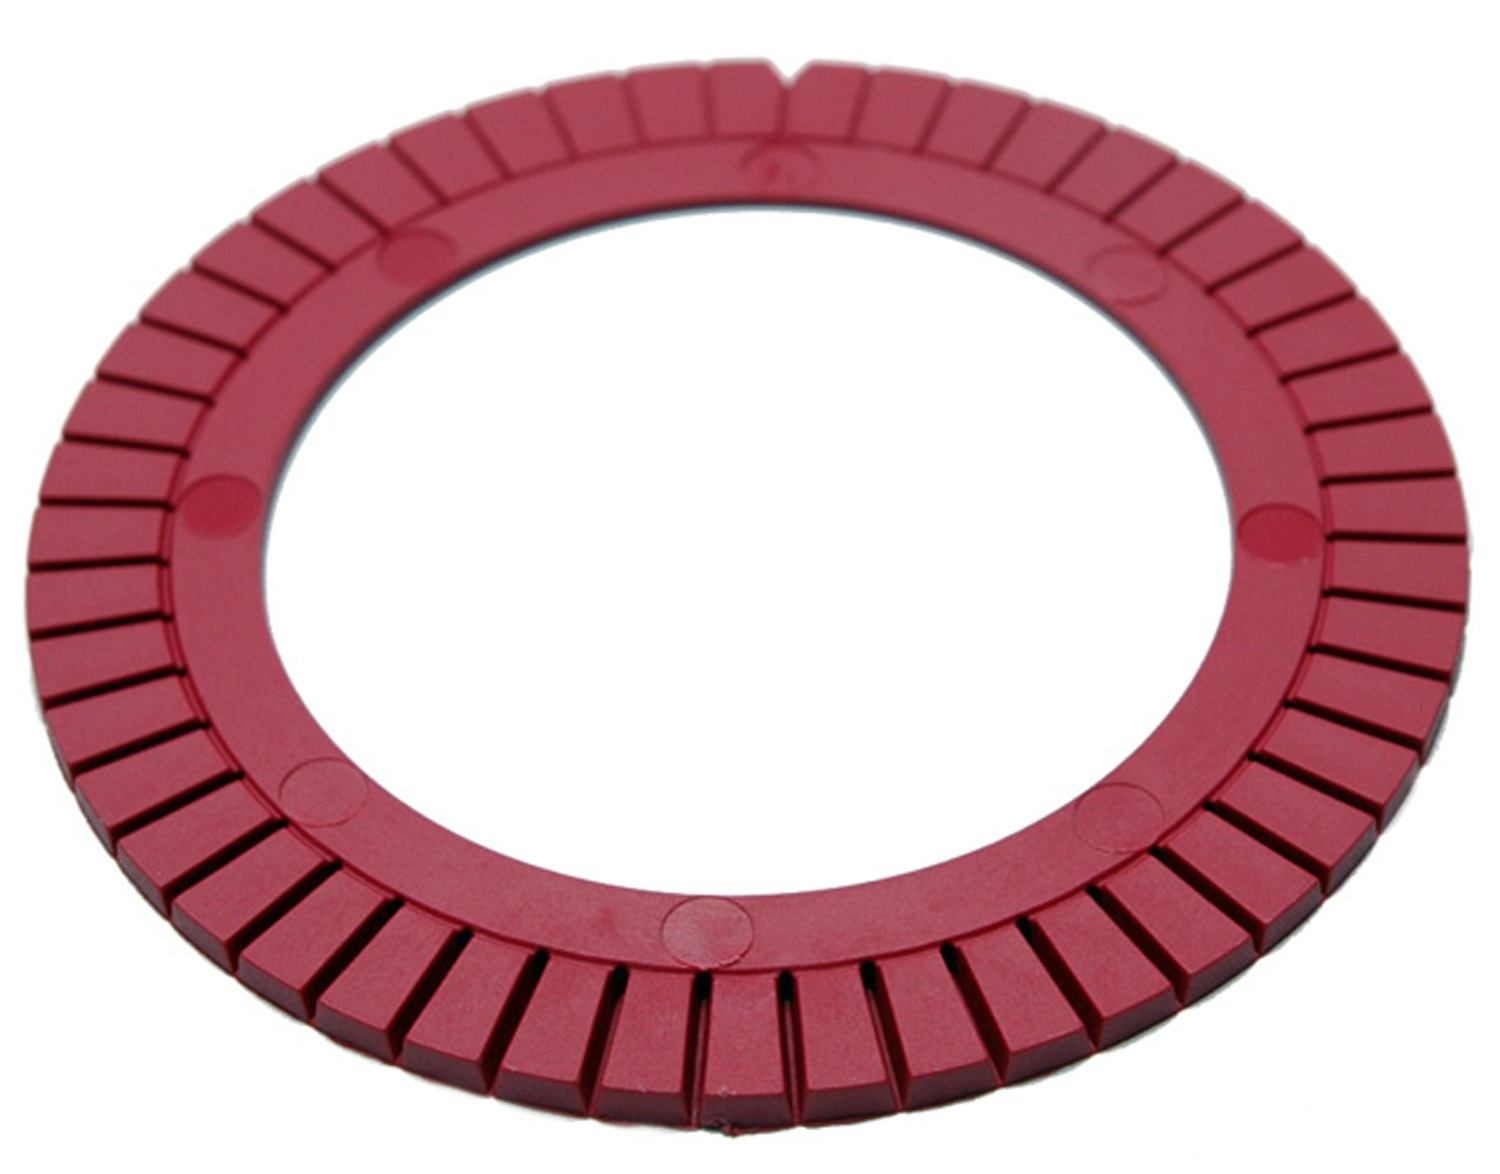 ACDELCO GOLD/PROFESSIONAL - Alignment Shim (Rear) - DCC 45K13133